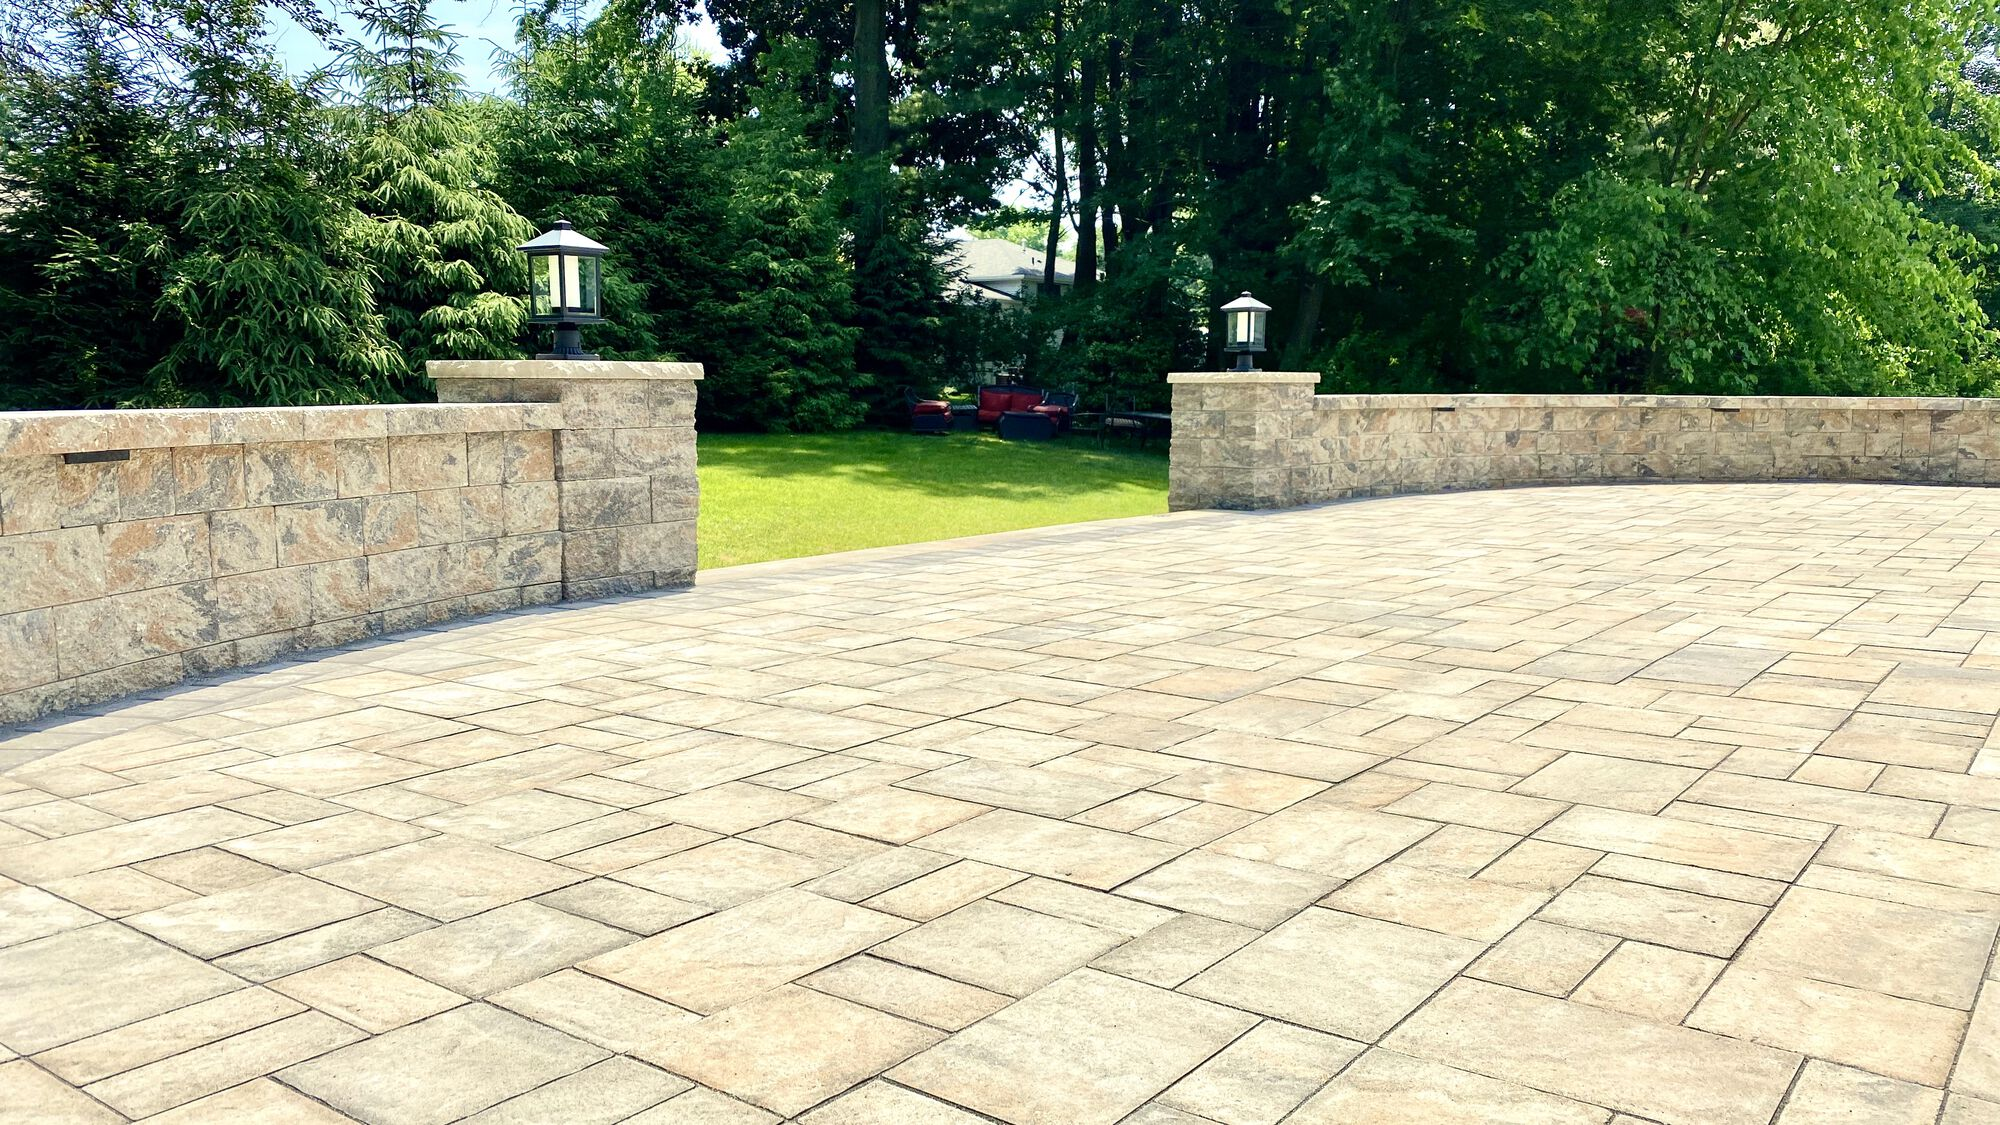 Raised Cambridge Ledgstone Paver Patio in toffee Onyx Light with Matching Steps, Sitting Walls, Columns in Oradell, Bergen County NJ